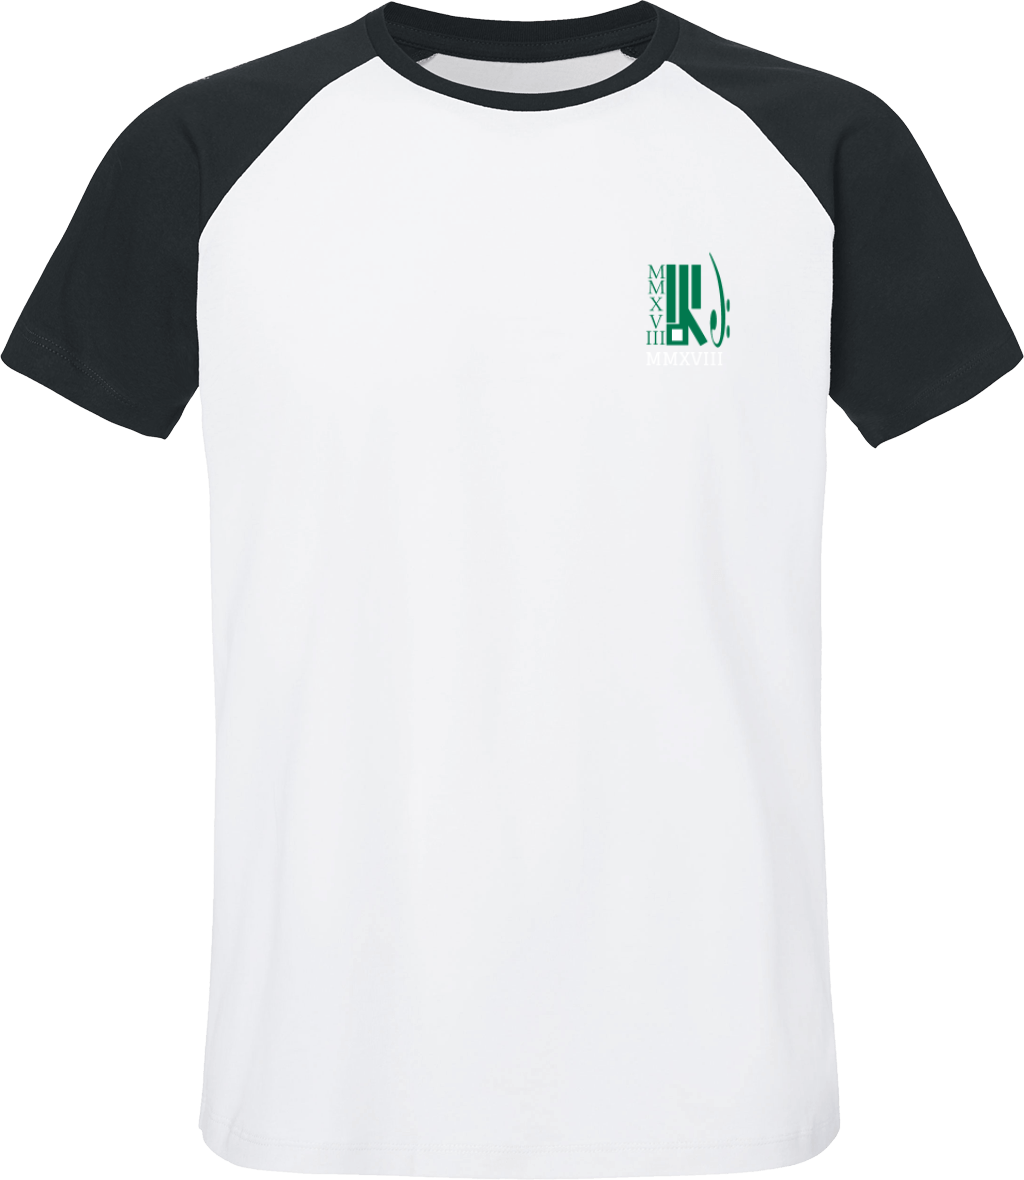 T-shirt Unisexe Baseball Short Sleeve MMXVIII